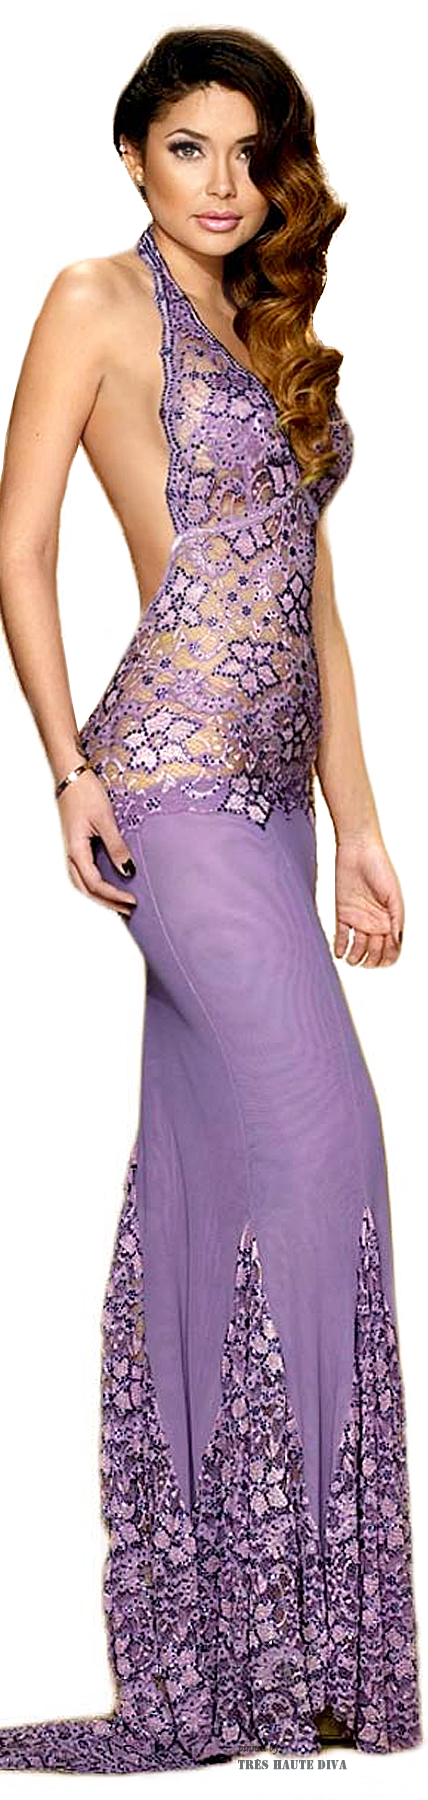 Camille Flawless Mermaid Purple Swarovski Crystals Gown